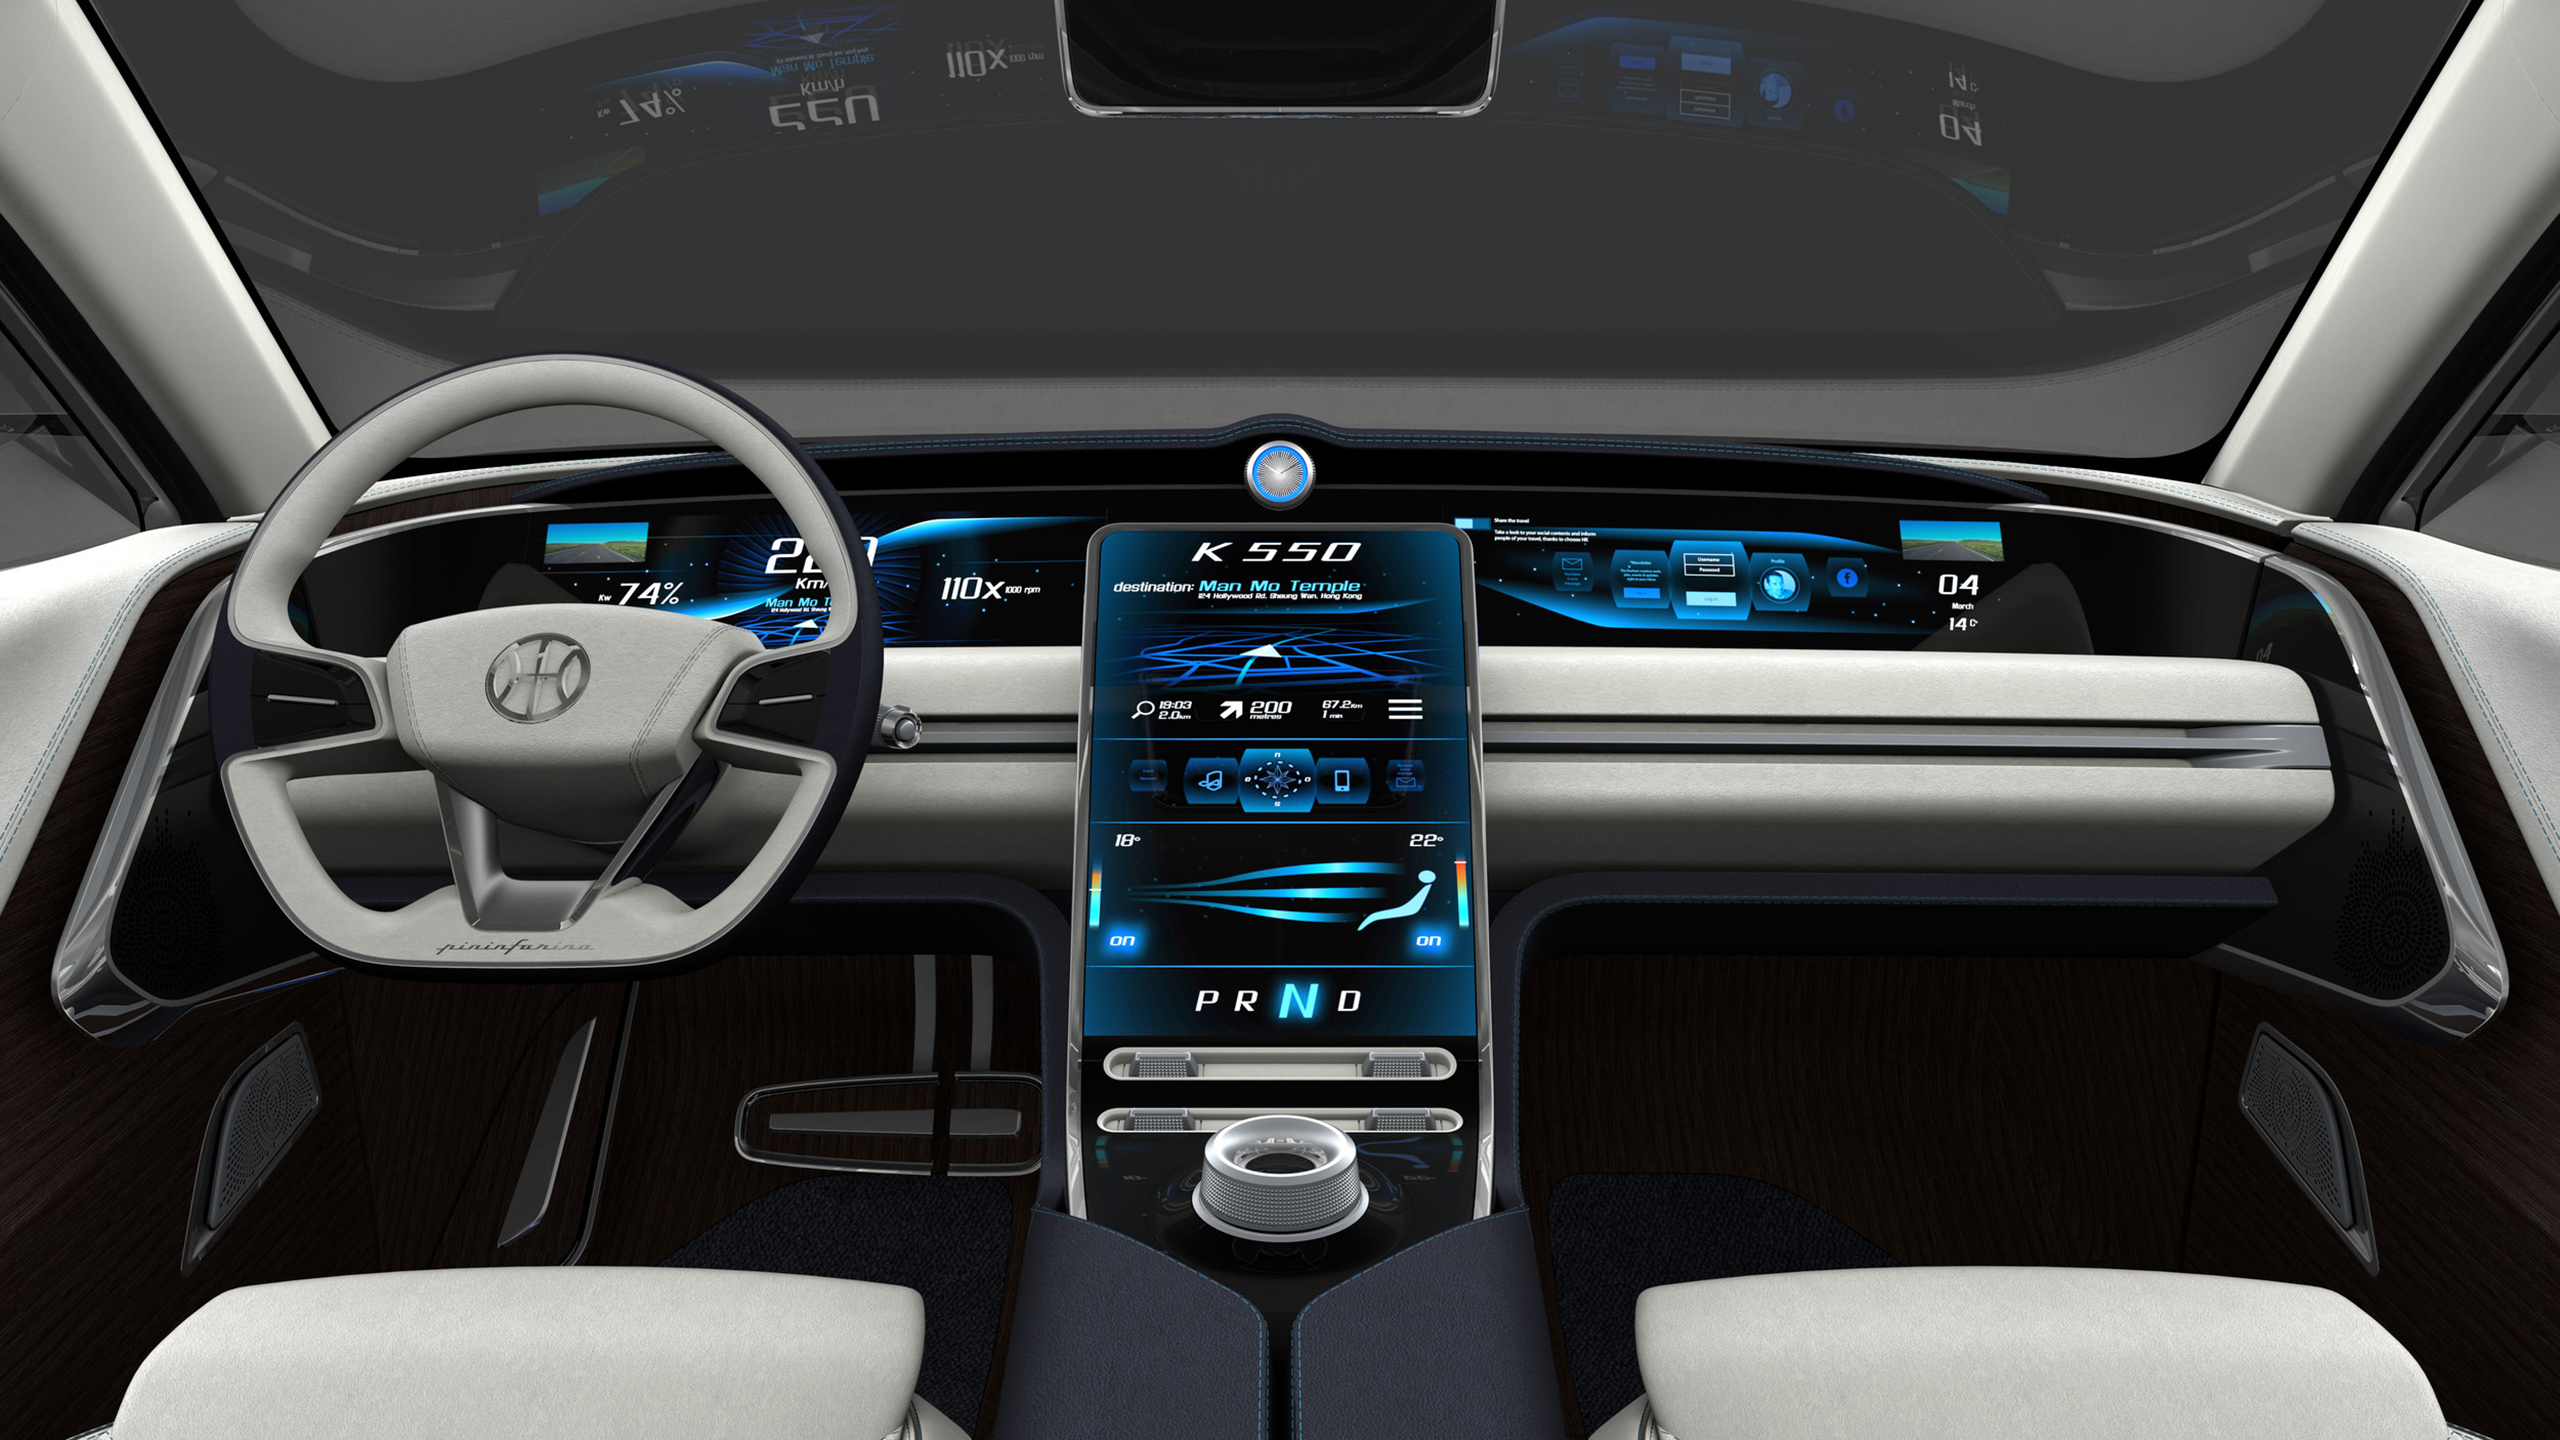 2017 Pininfarina Hybrid Kinetic K550 Interior Wallpaper ...